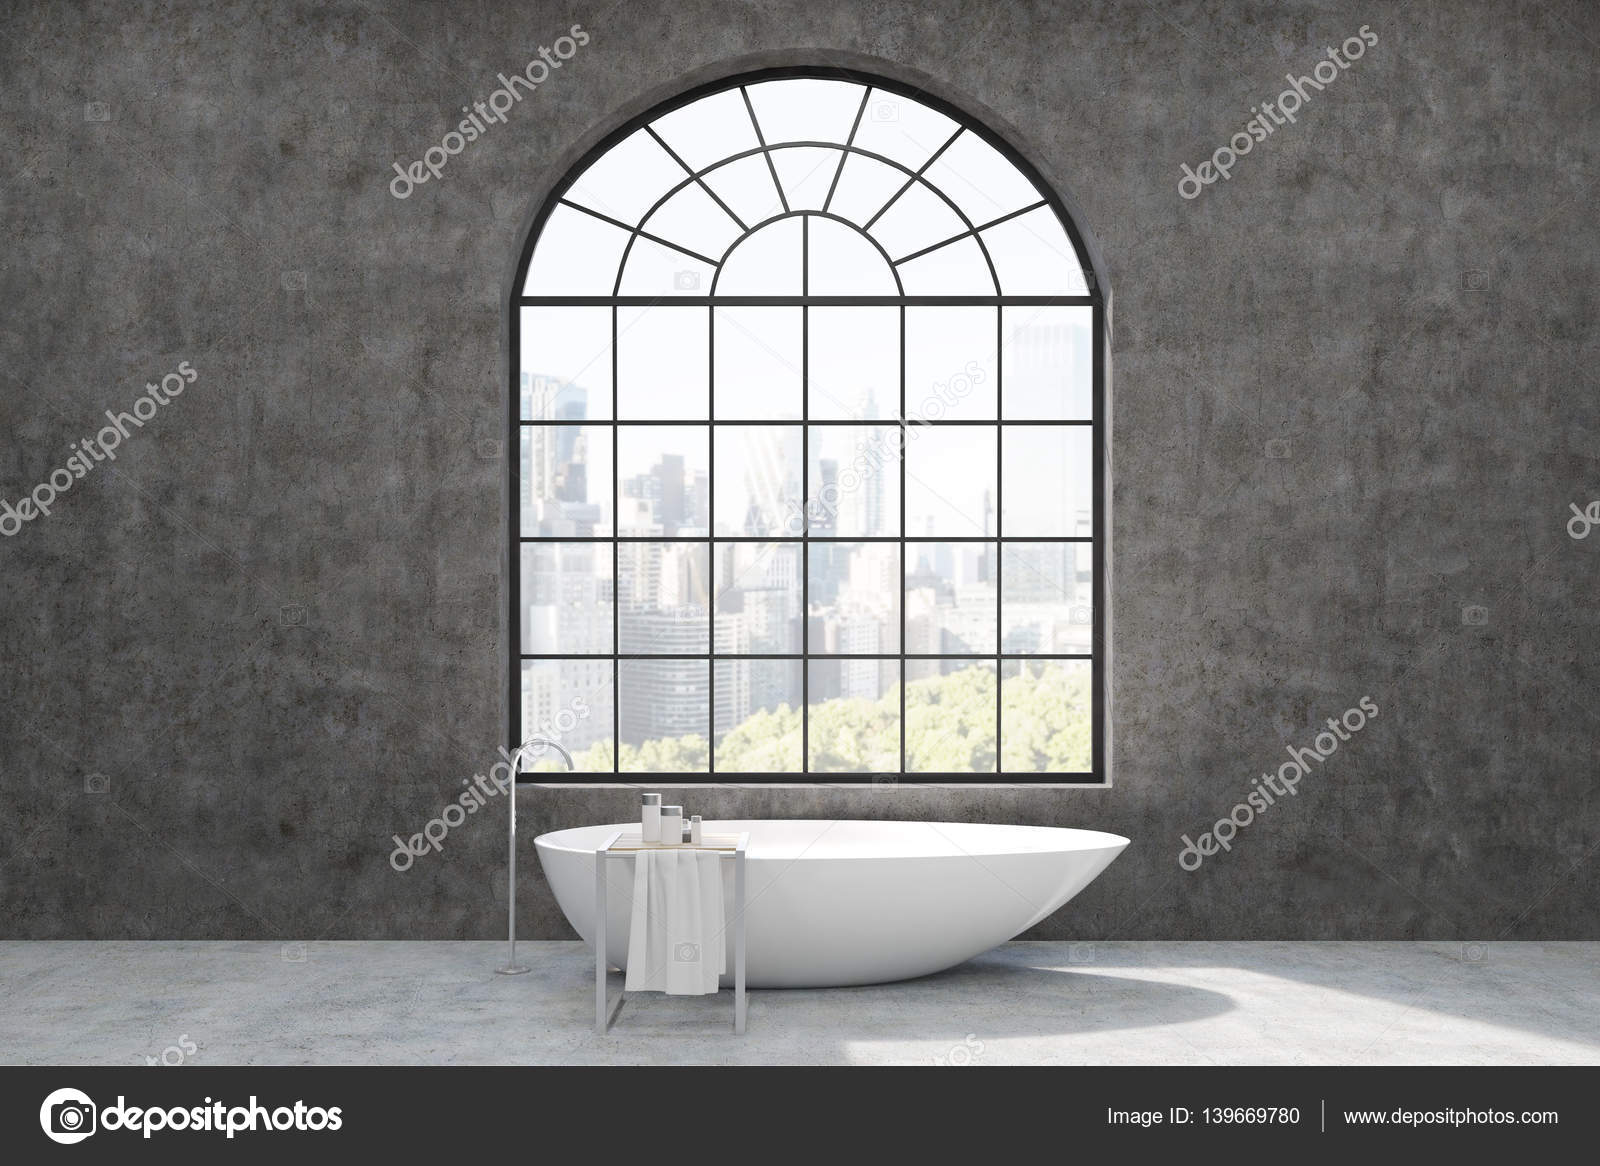 bathroom interior with concrete walls, arc shaped window with city